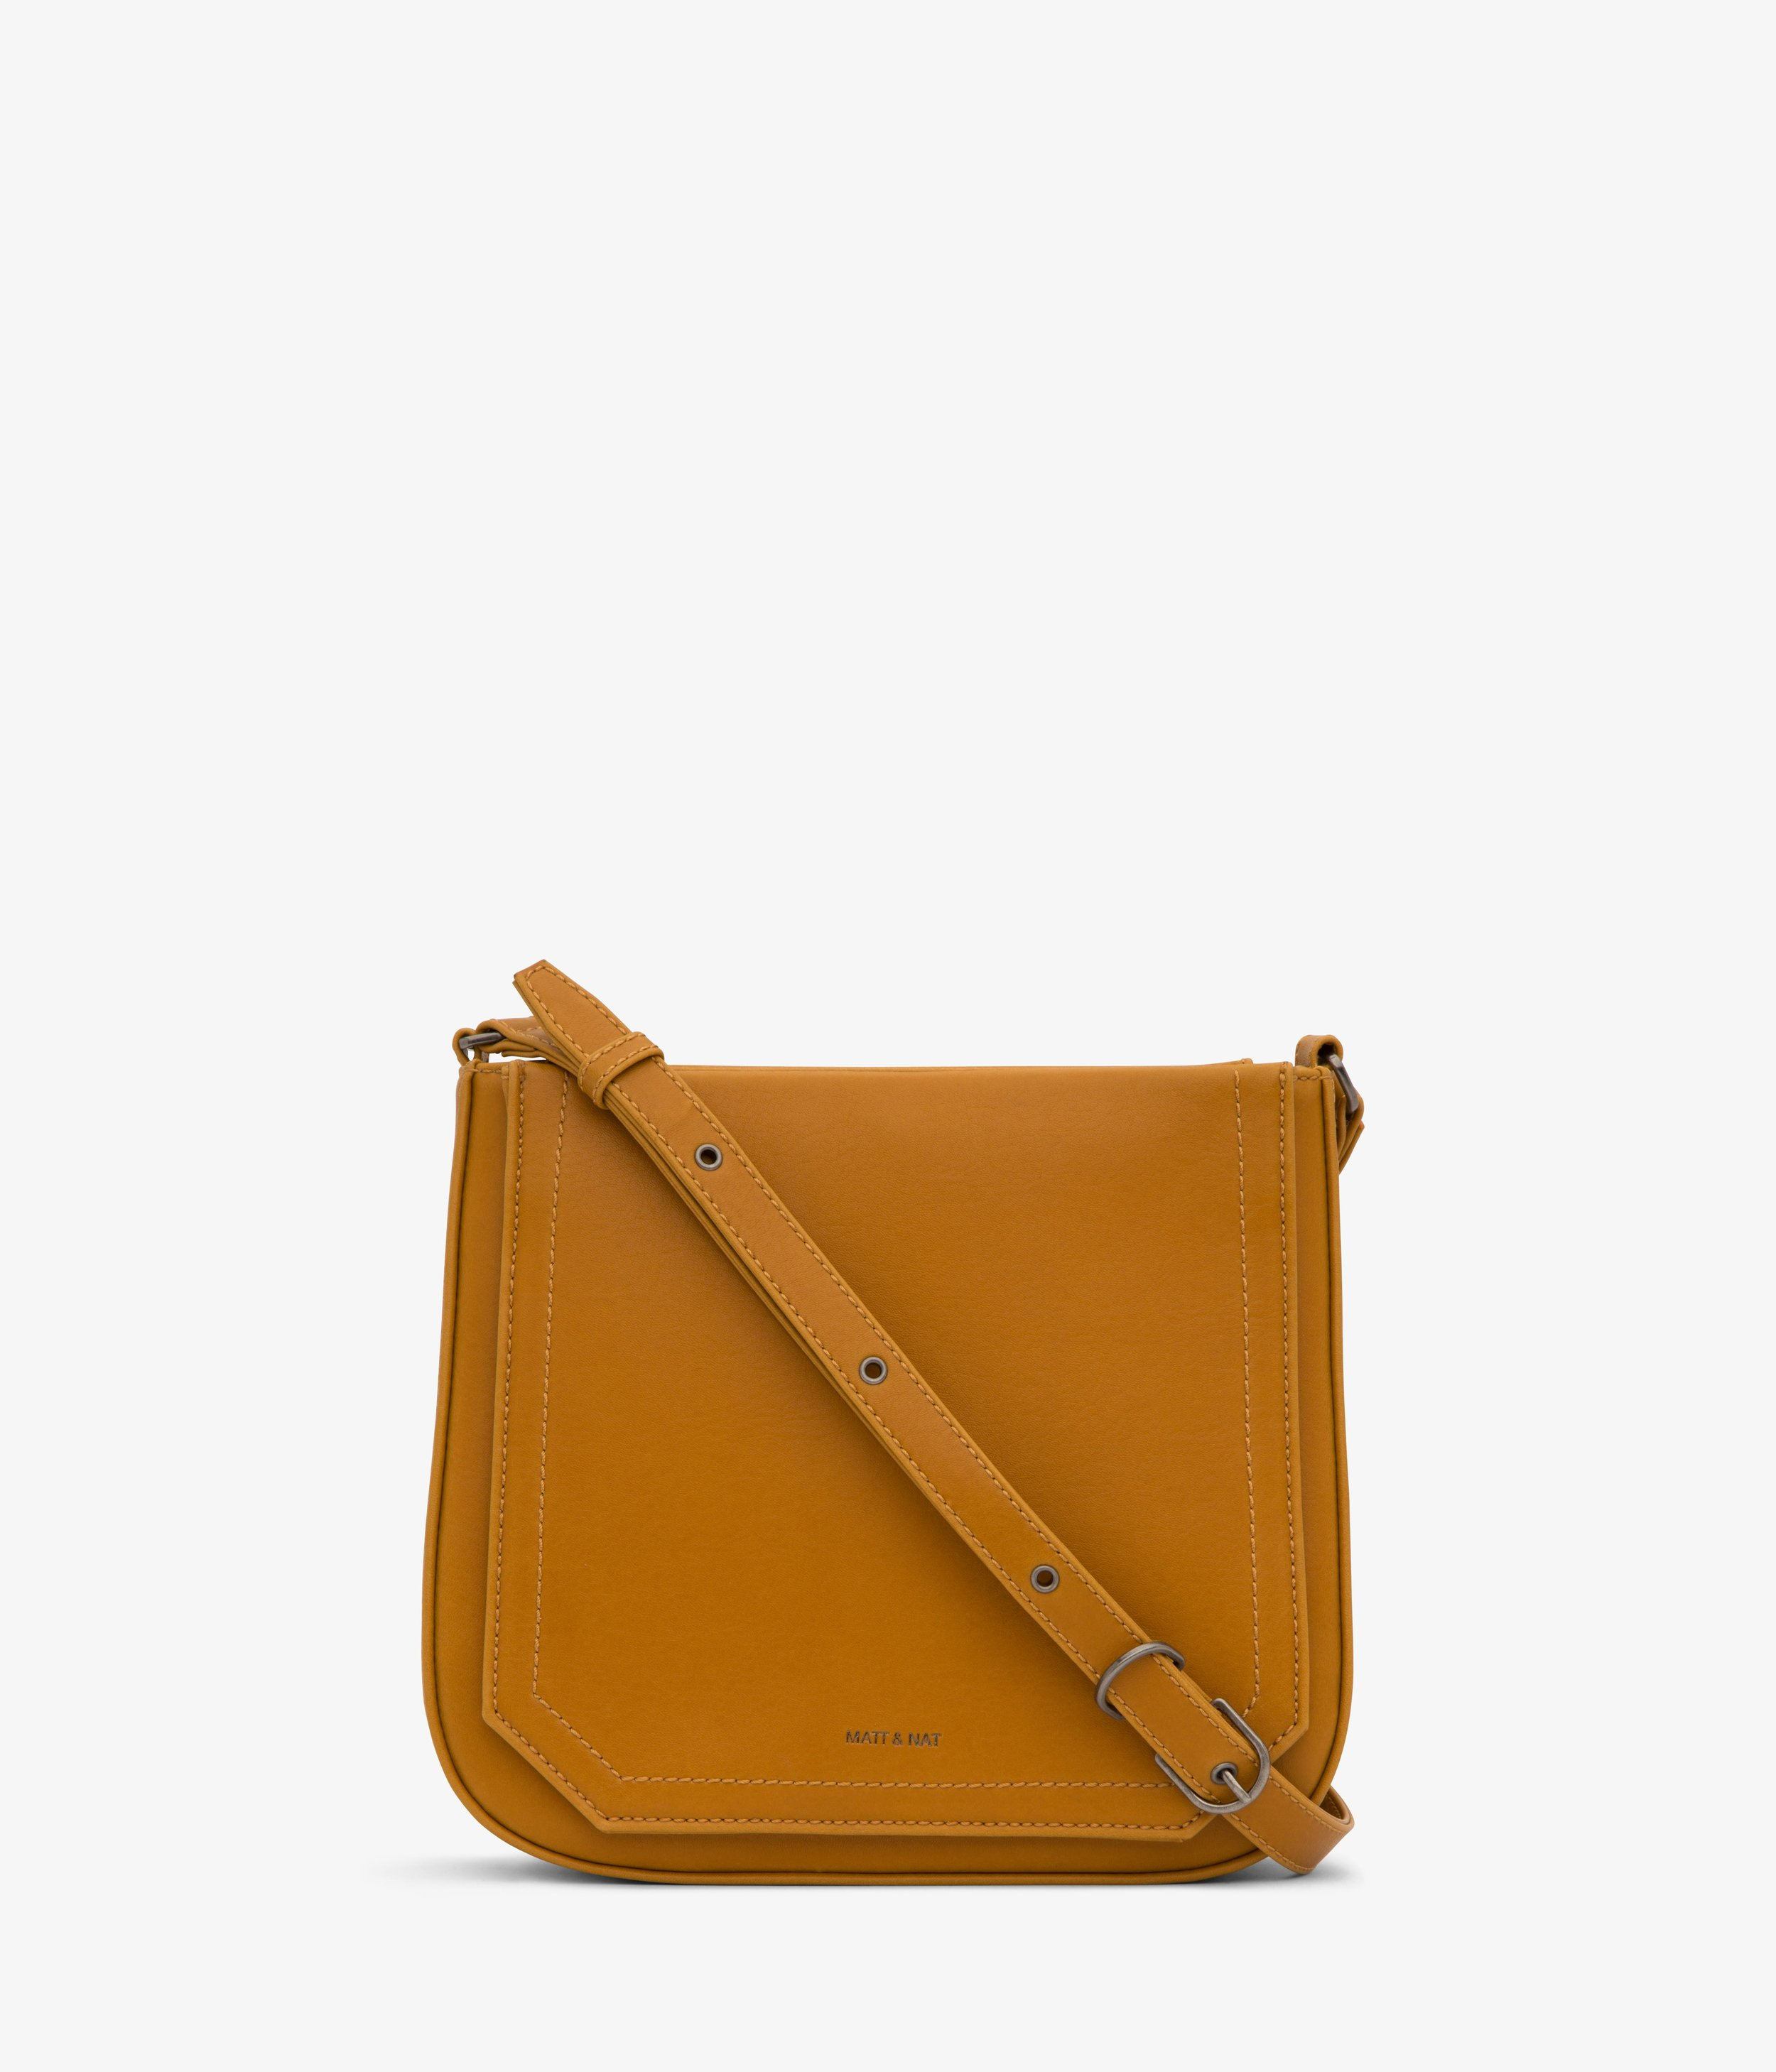 Matt & Nat Crossbody Bag // Hollywood Outfit Inspiration - To All The Boys I've Loved Before